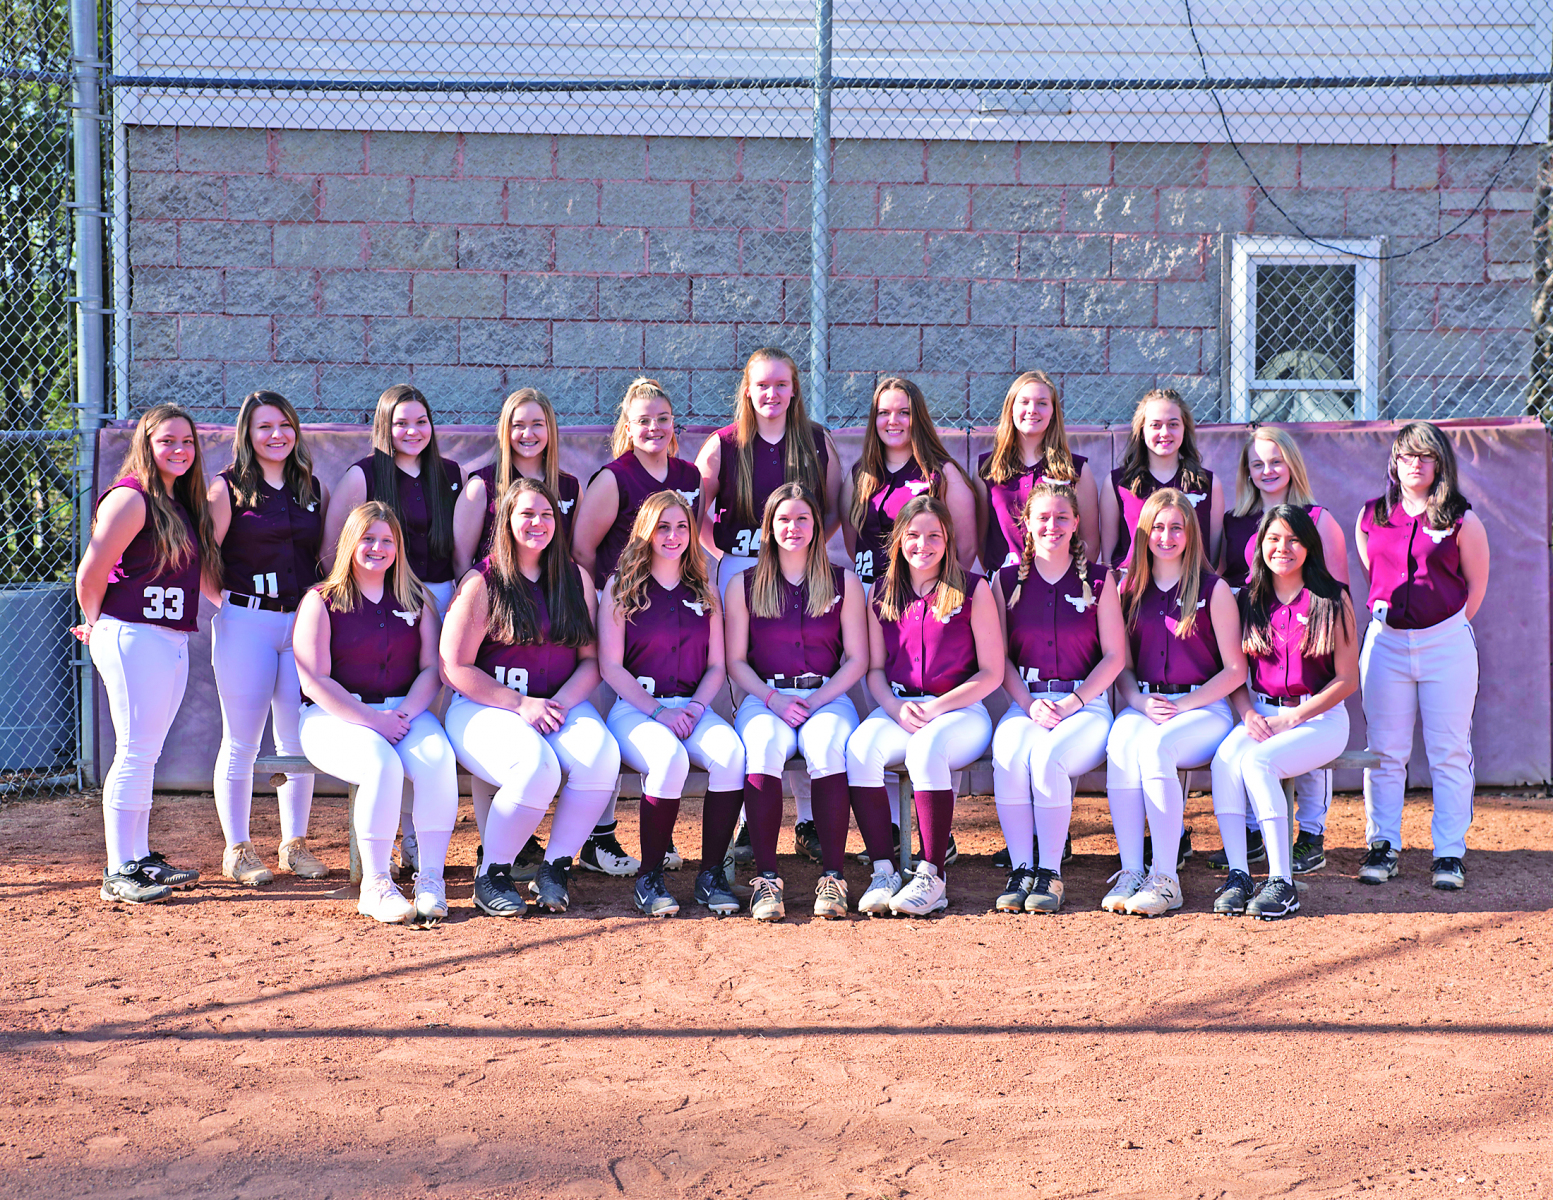 JCHS-Softball-team-CMYK